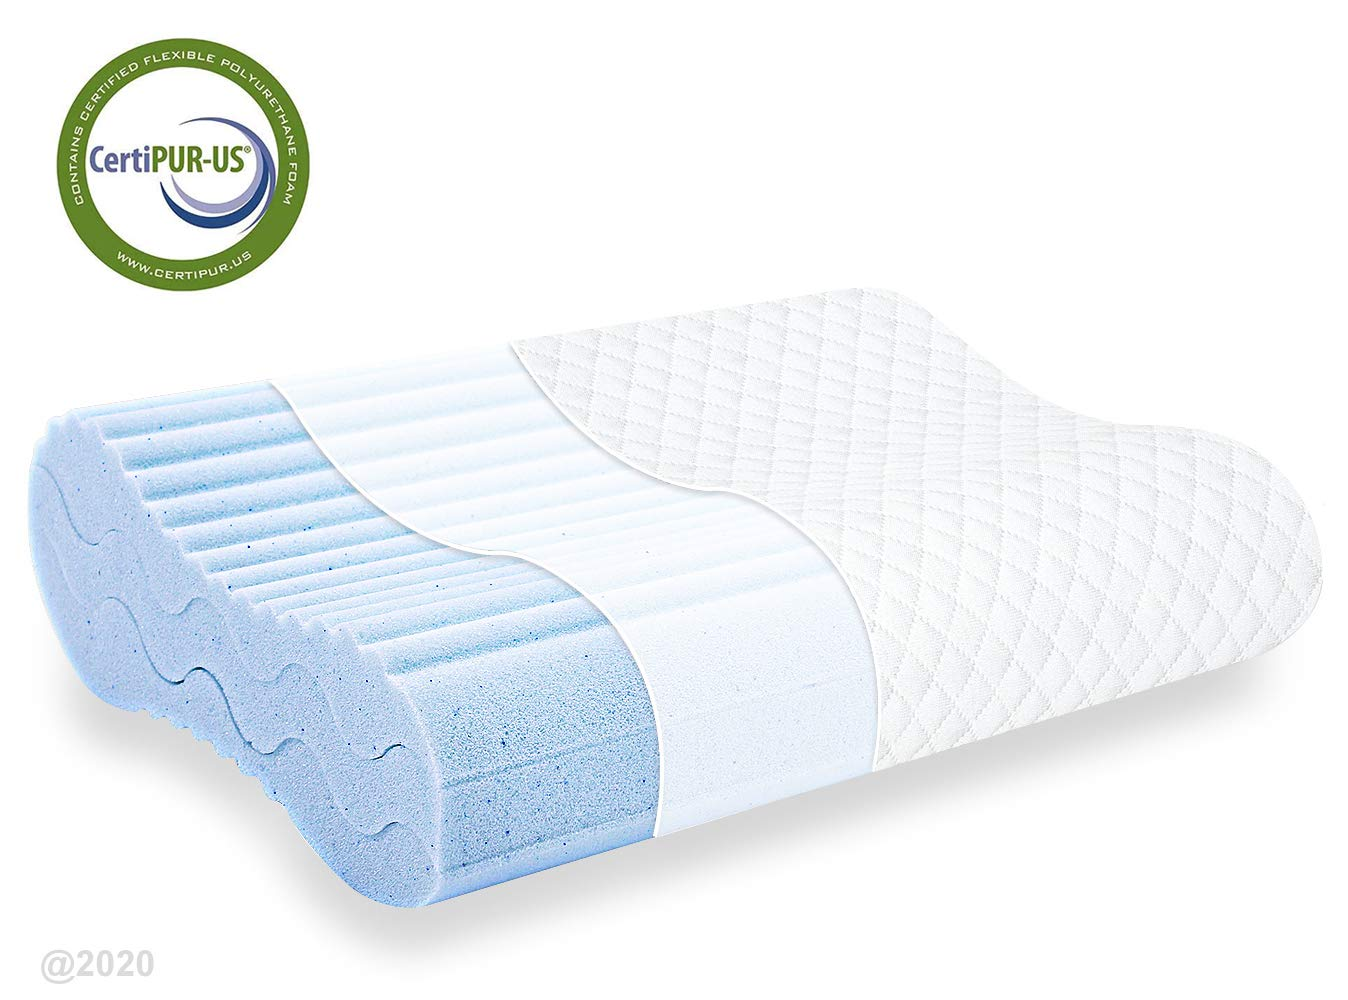 milemont memory foam pillow bed pillow for sleeping adjustable contour pillow for neck pain neck support for back stomach side sleepers